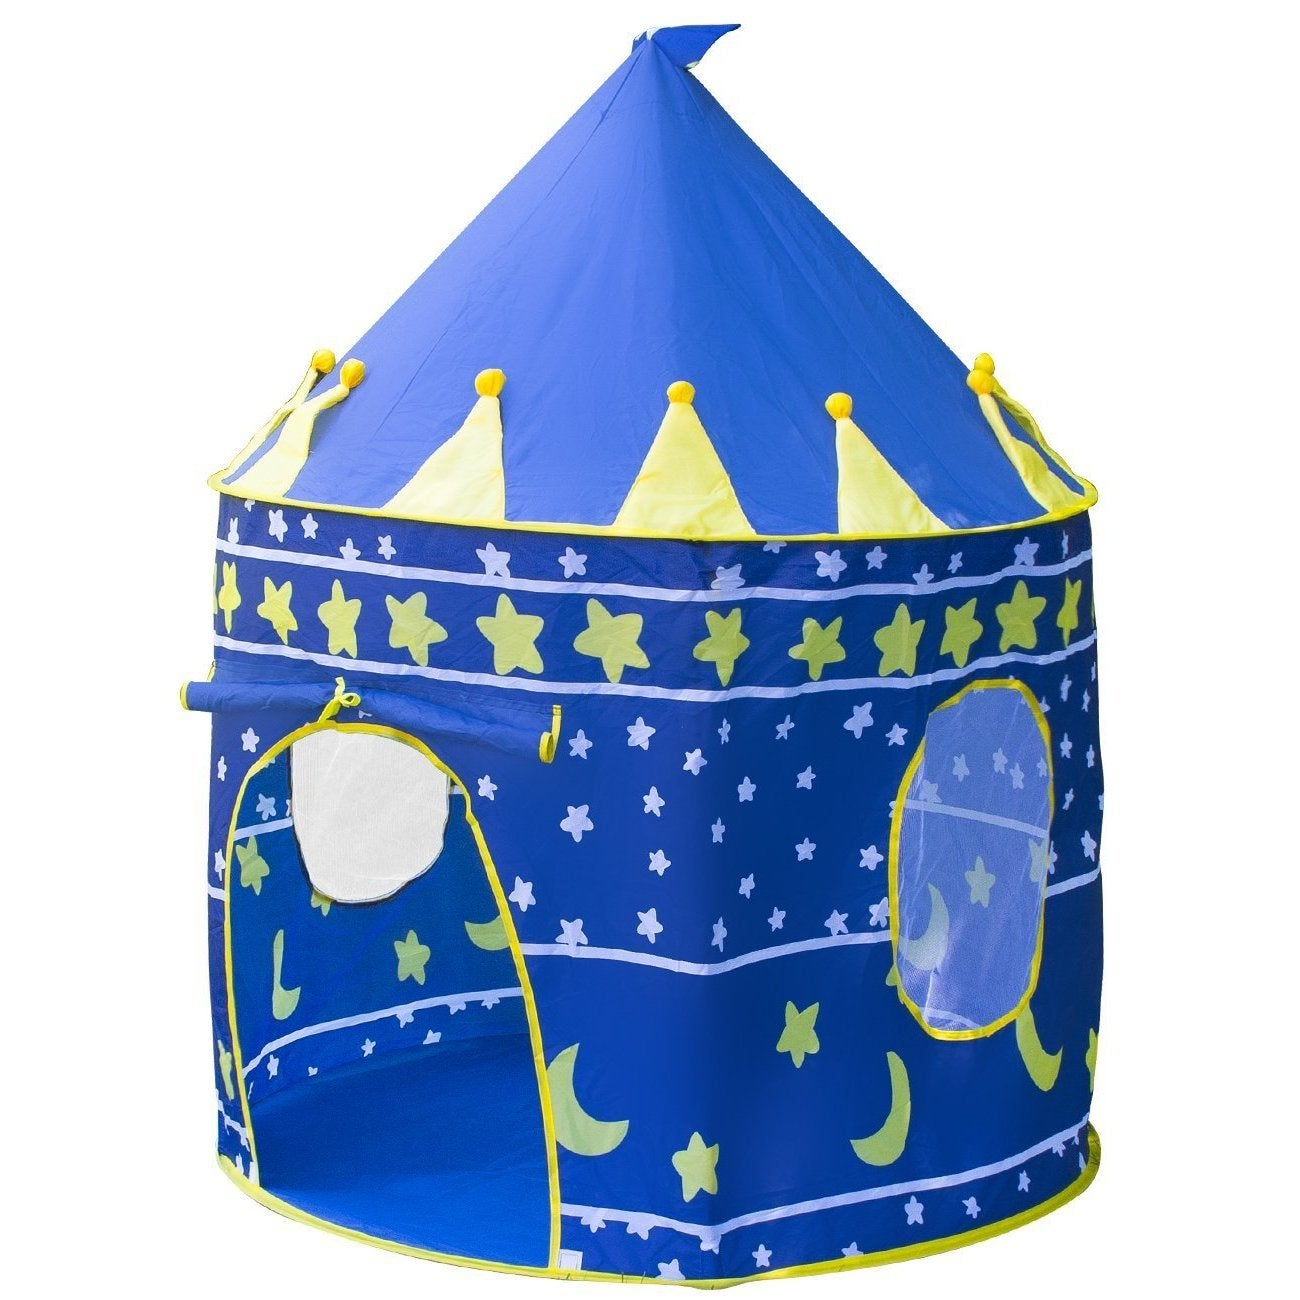 Ggi International Matney Kids Blue Playhouse Castle Tent ...